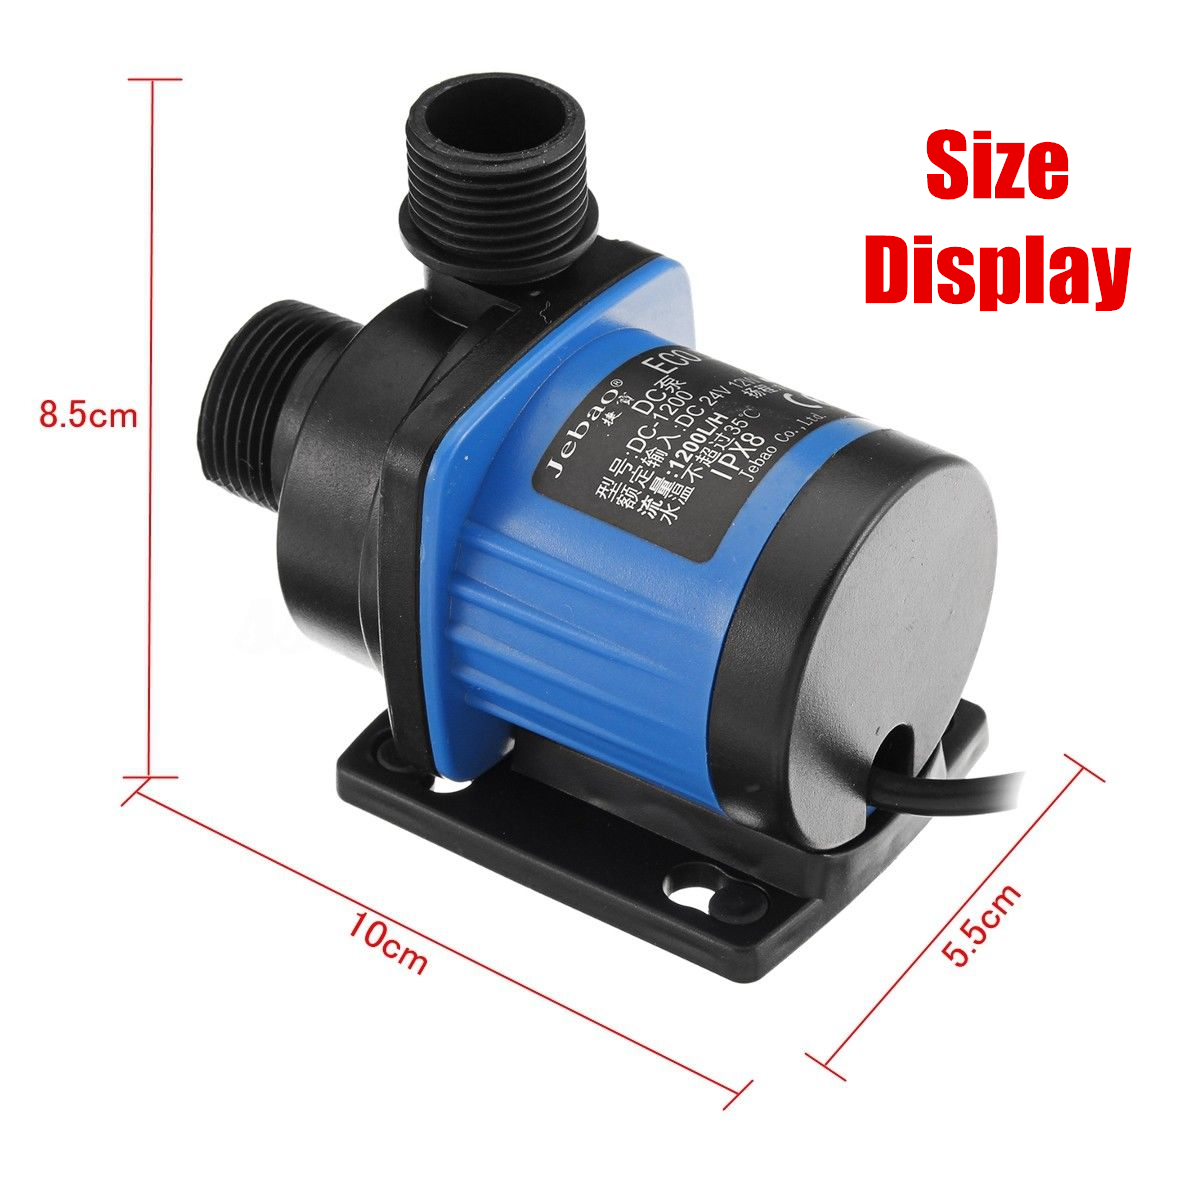 JEBAO DC1200 Adjustable Frequency Wate Submersible Aquarium Air Pump Fish Tank W/ Controller